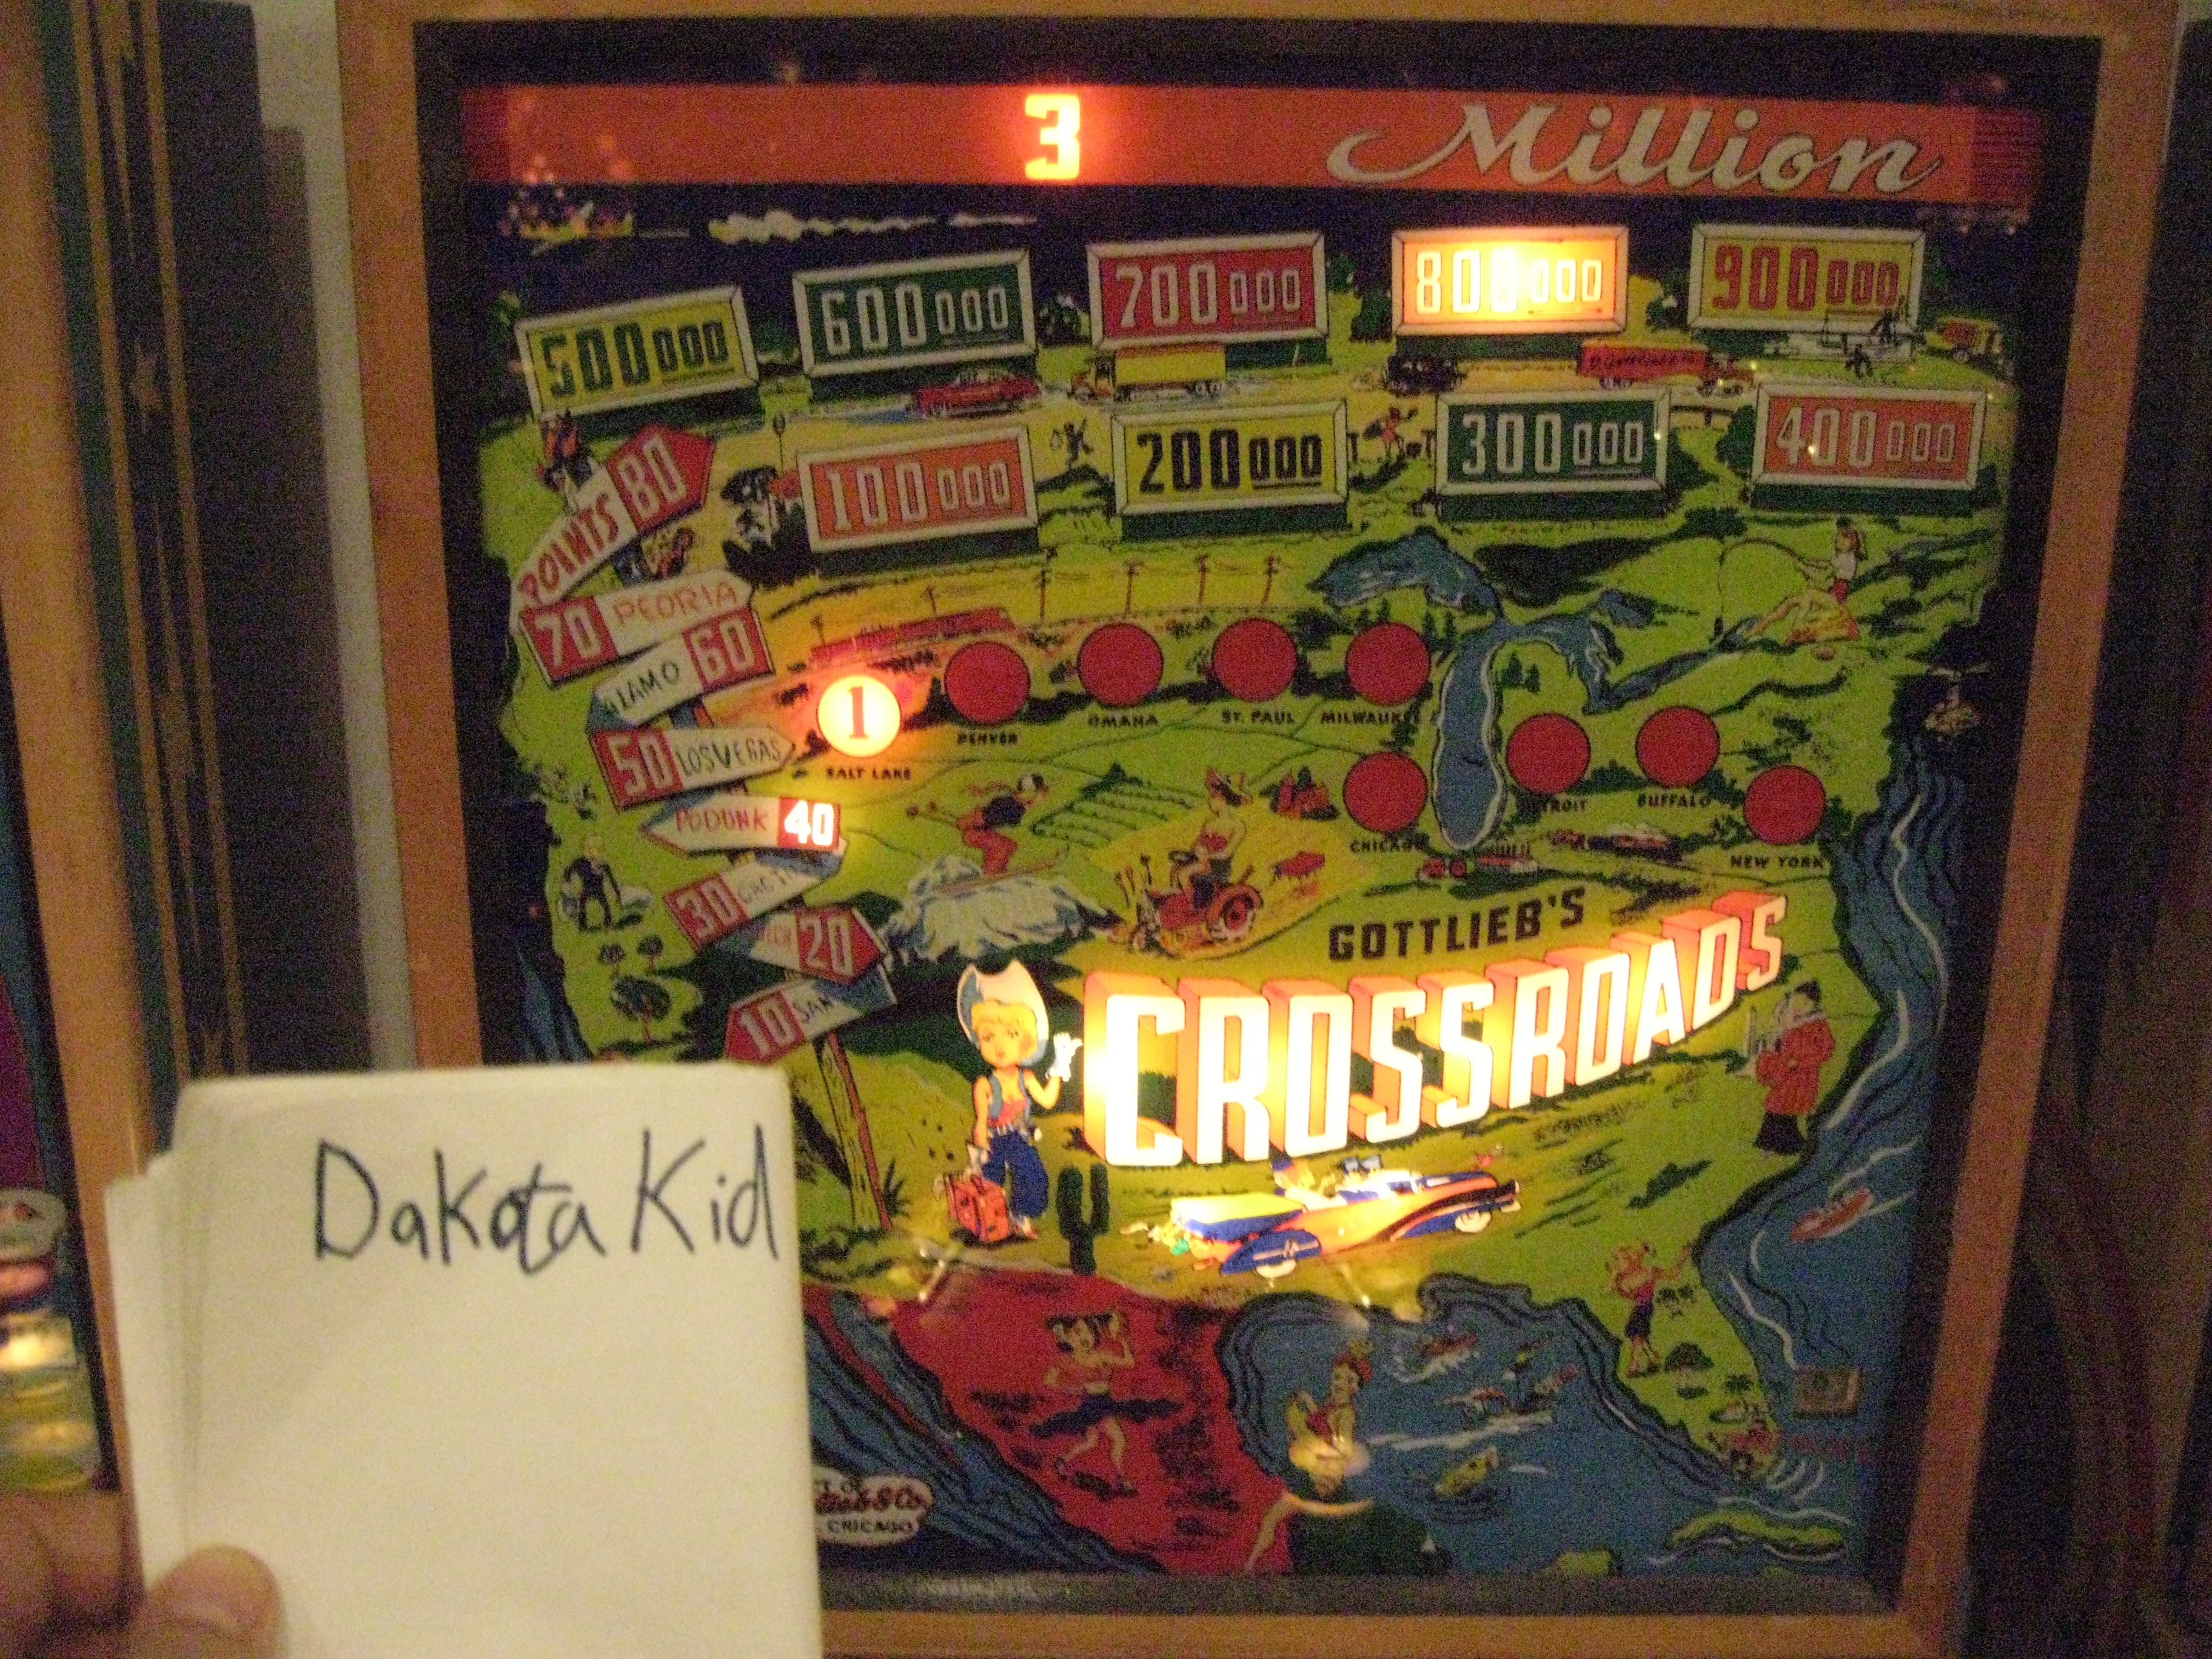 DakotaKid: Crossroads (Pinball: 5 Balls) 3,800,040 points on 2015-08-28 13:30:58